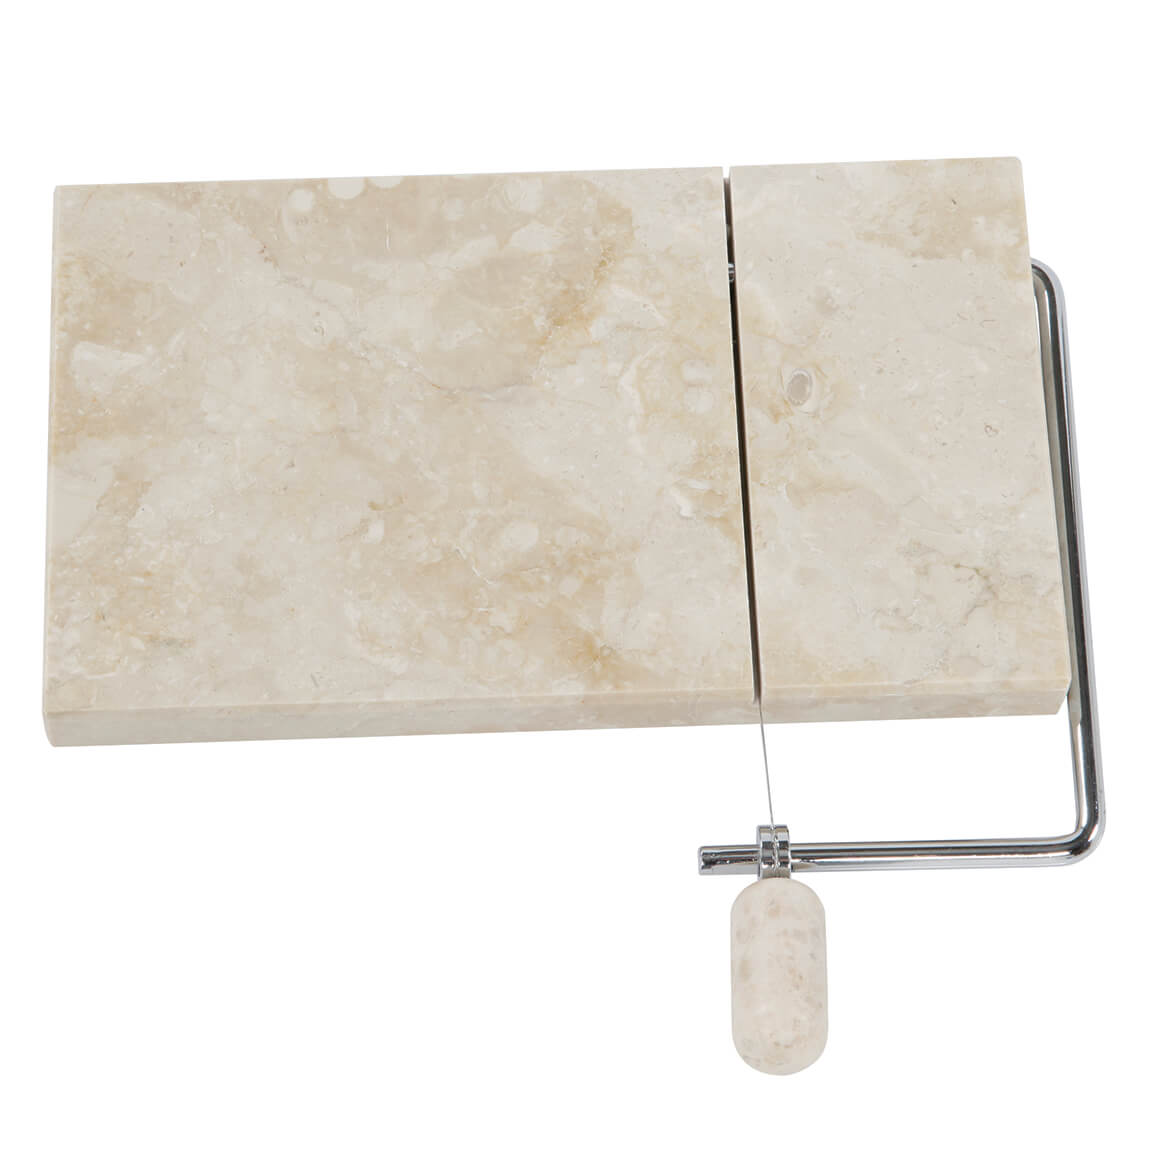 Marble Cheese Slicer-317449